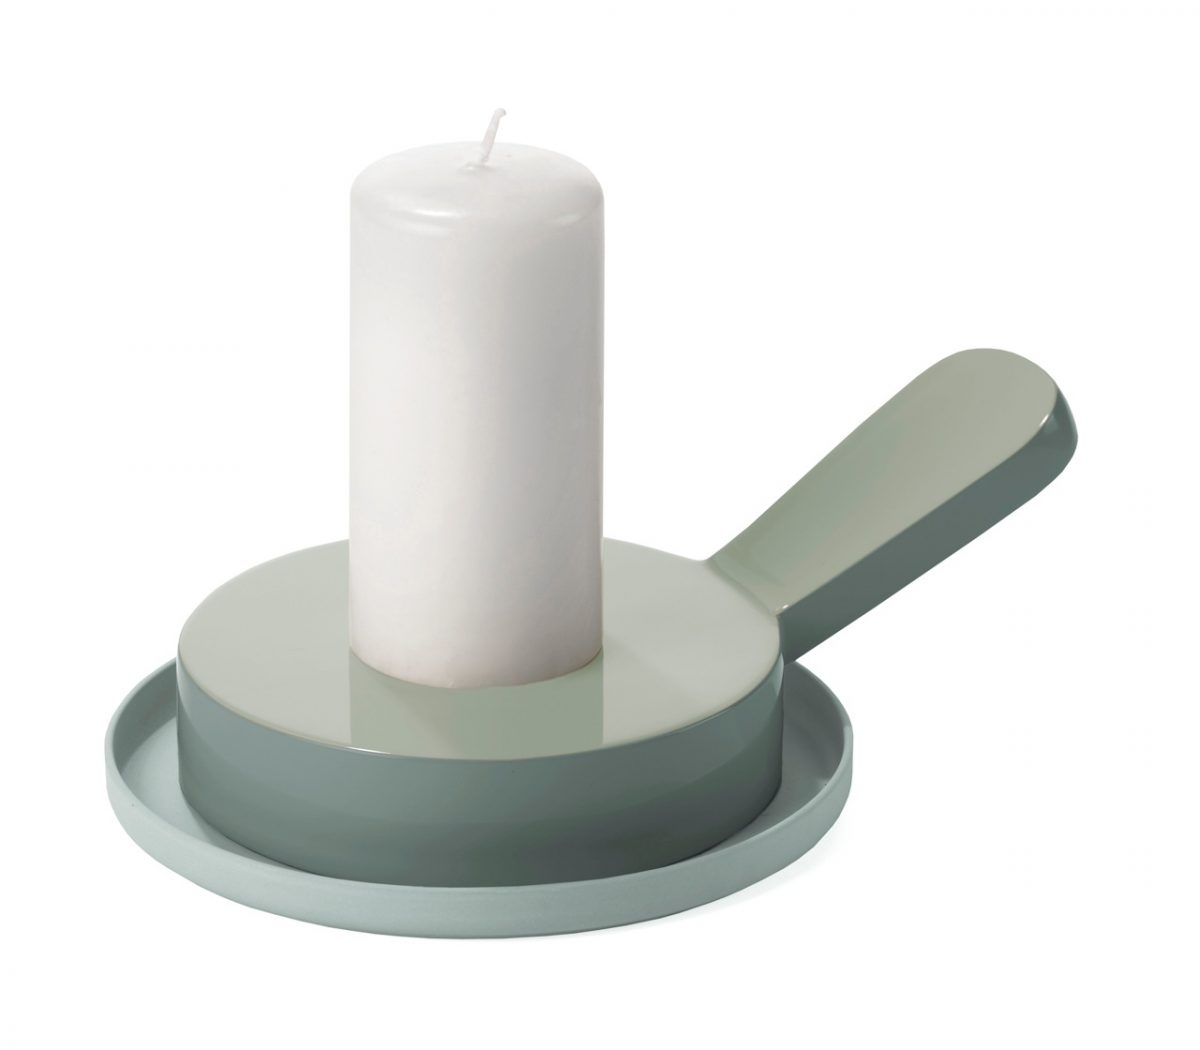 Candlestick grey Saigon Lacquer Large grijs Imperfect Design